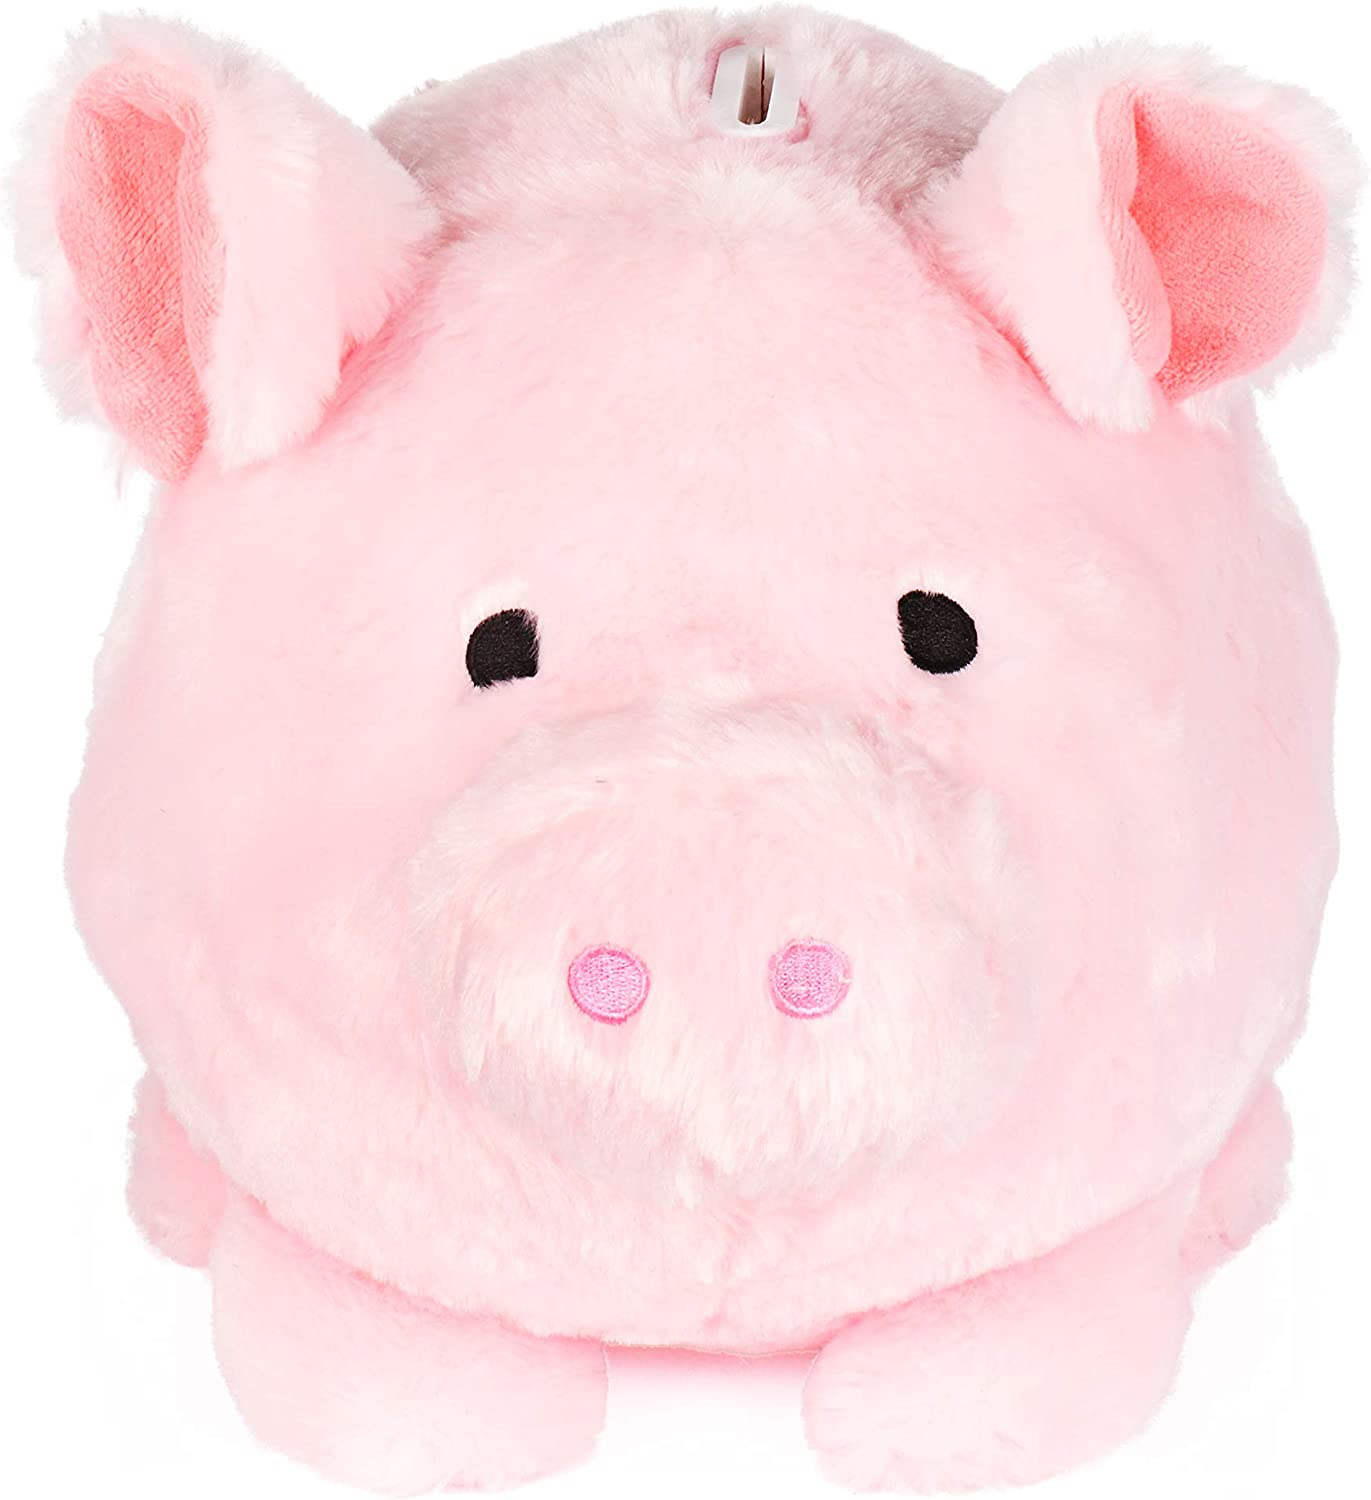 FAB Starpoint Jumbo Plush Piggy Bank, Hug Me and Fill Me! (Light Pink)